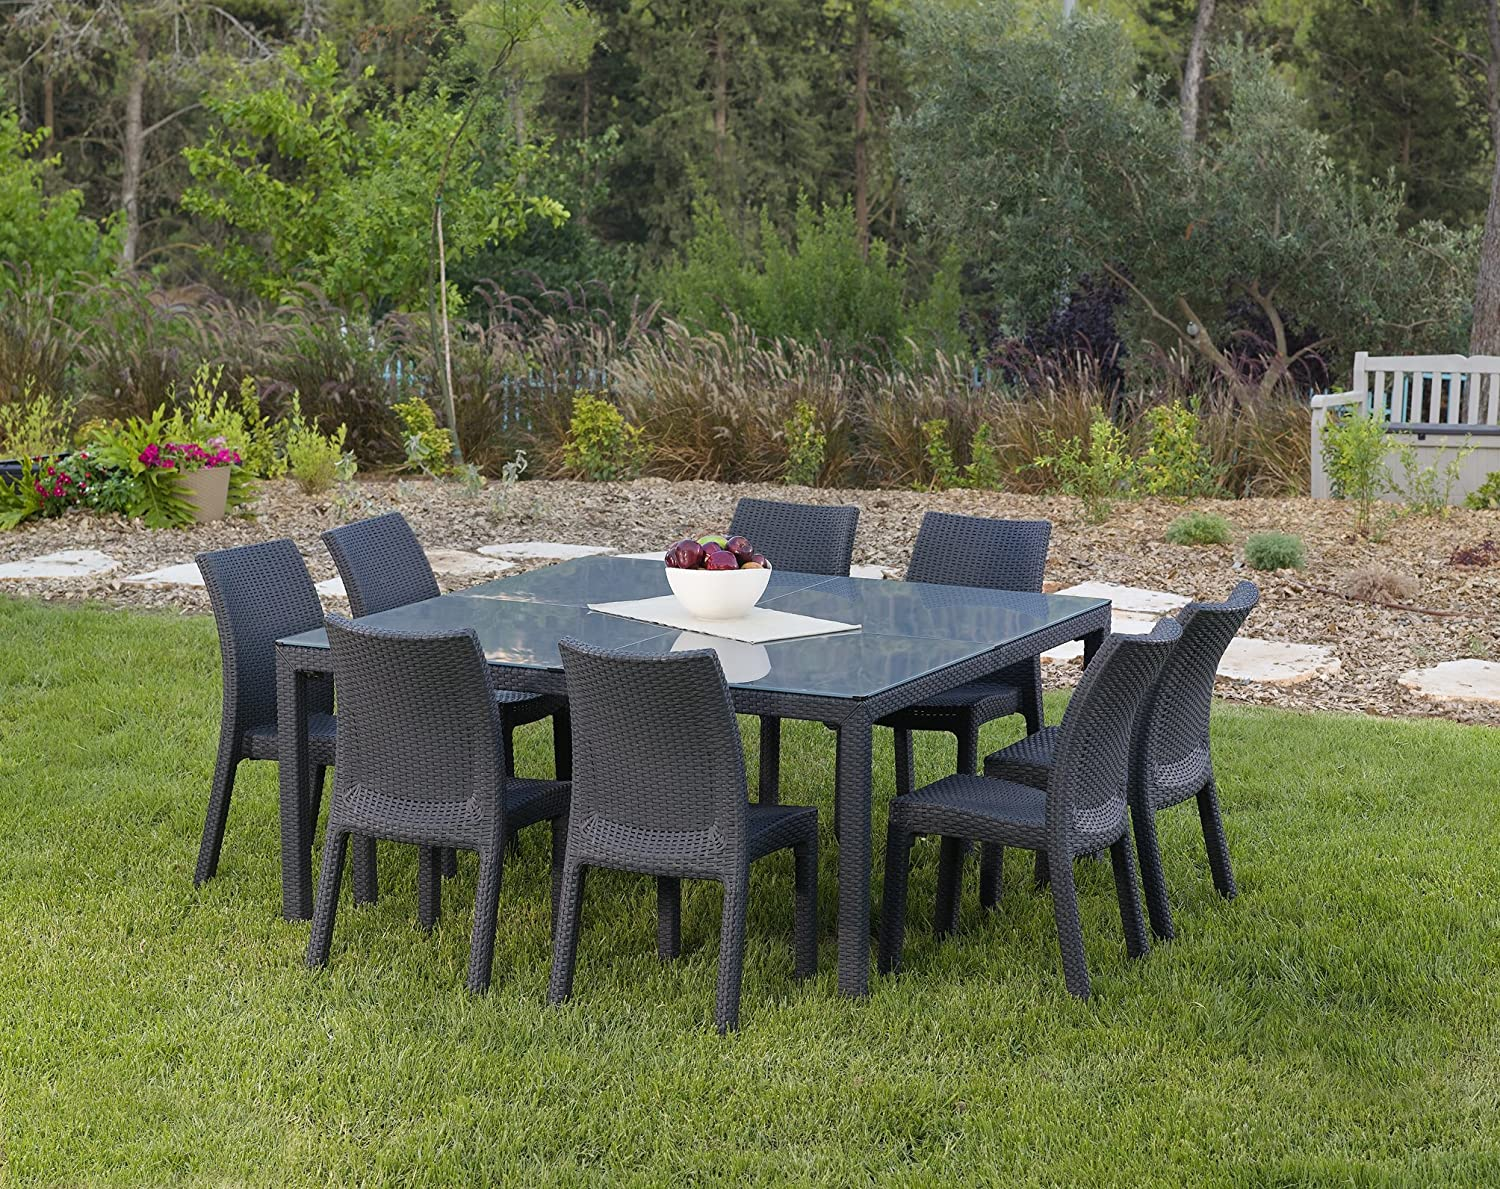 Captivating Amazon.com : Keter Fiji Dining Table Modern All Weather Patio Garden  Outdoor Furniture Square, Charcoal : Keter Outdoor Dining Set : Garden U0026  Outdoor